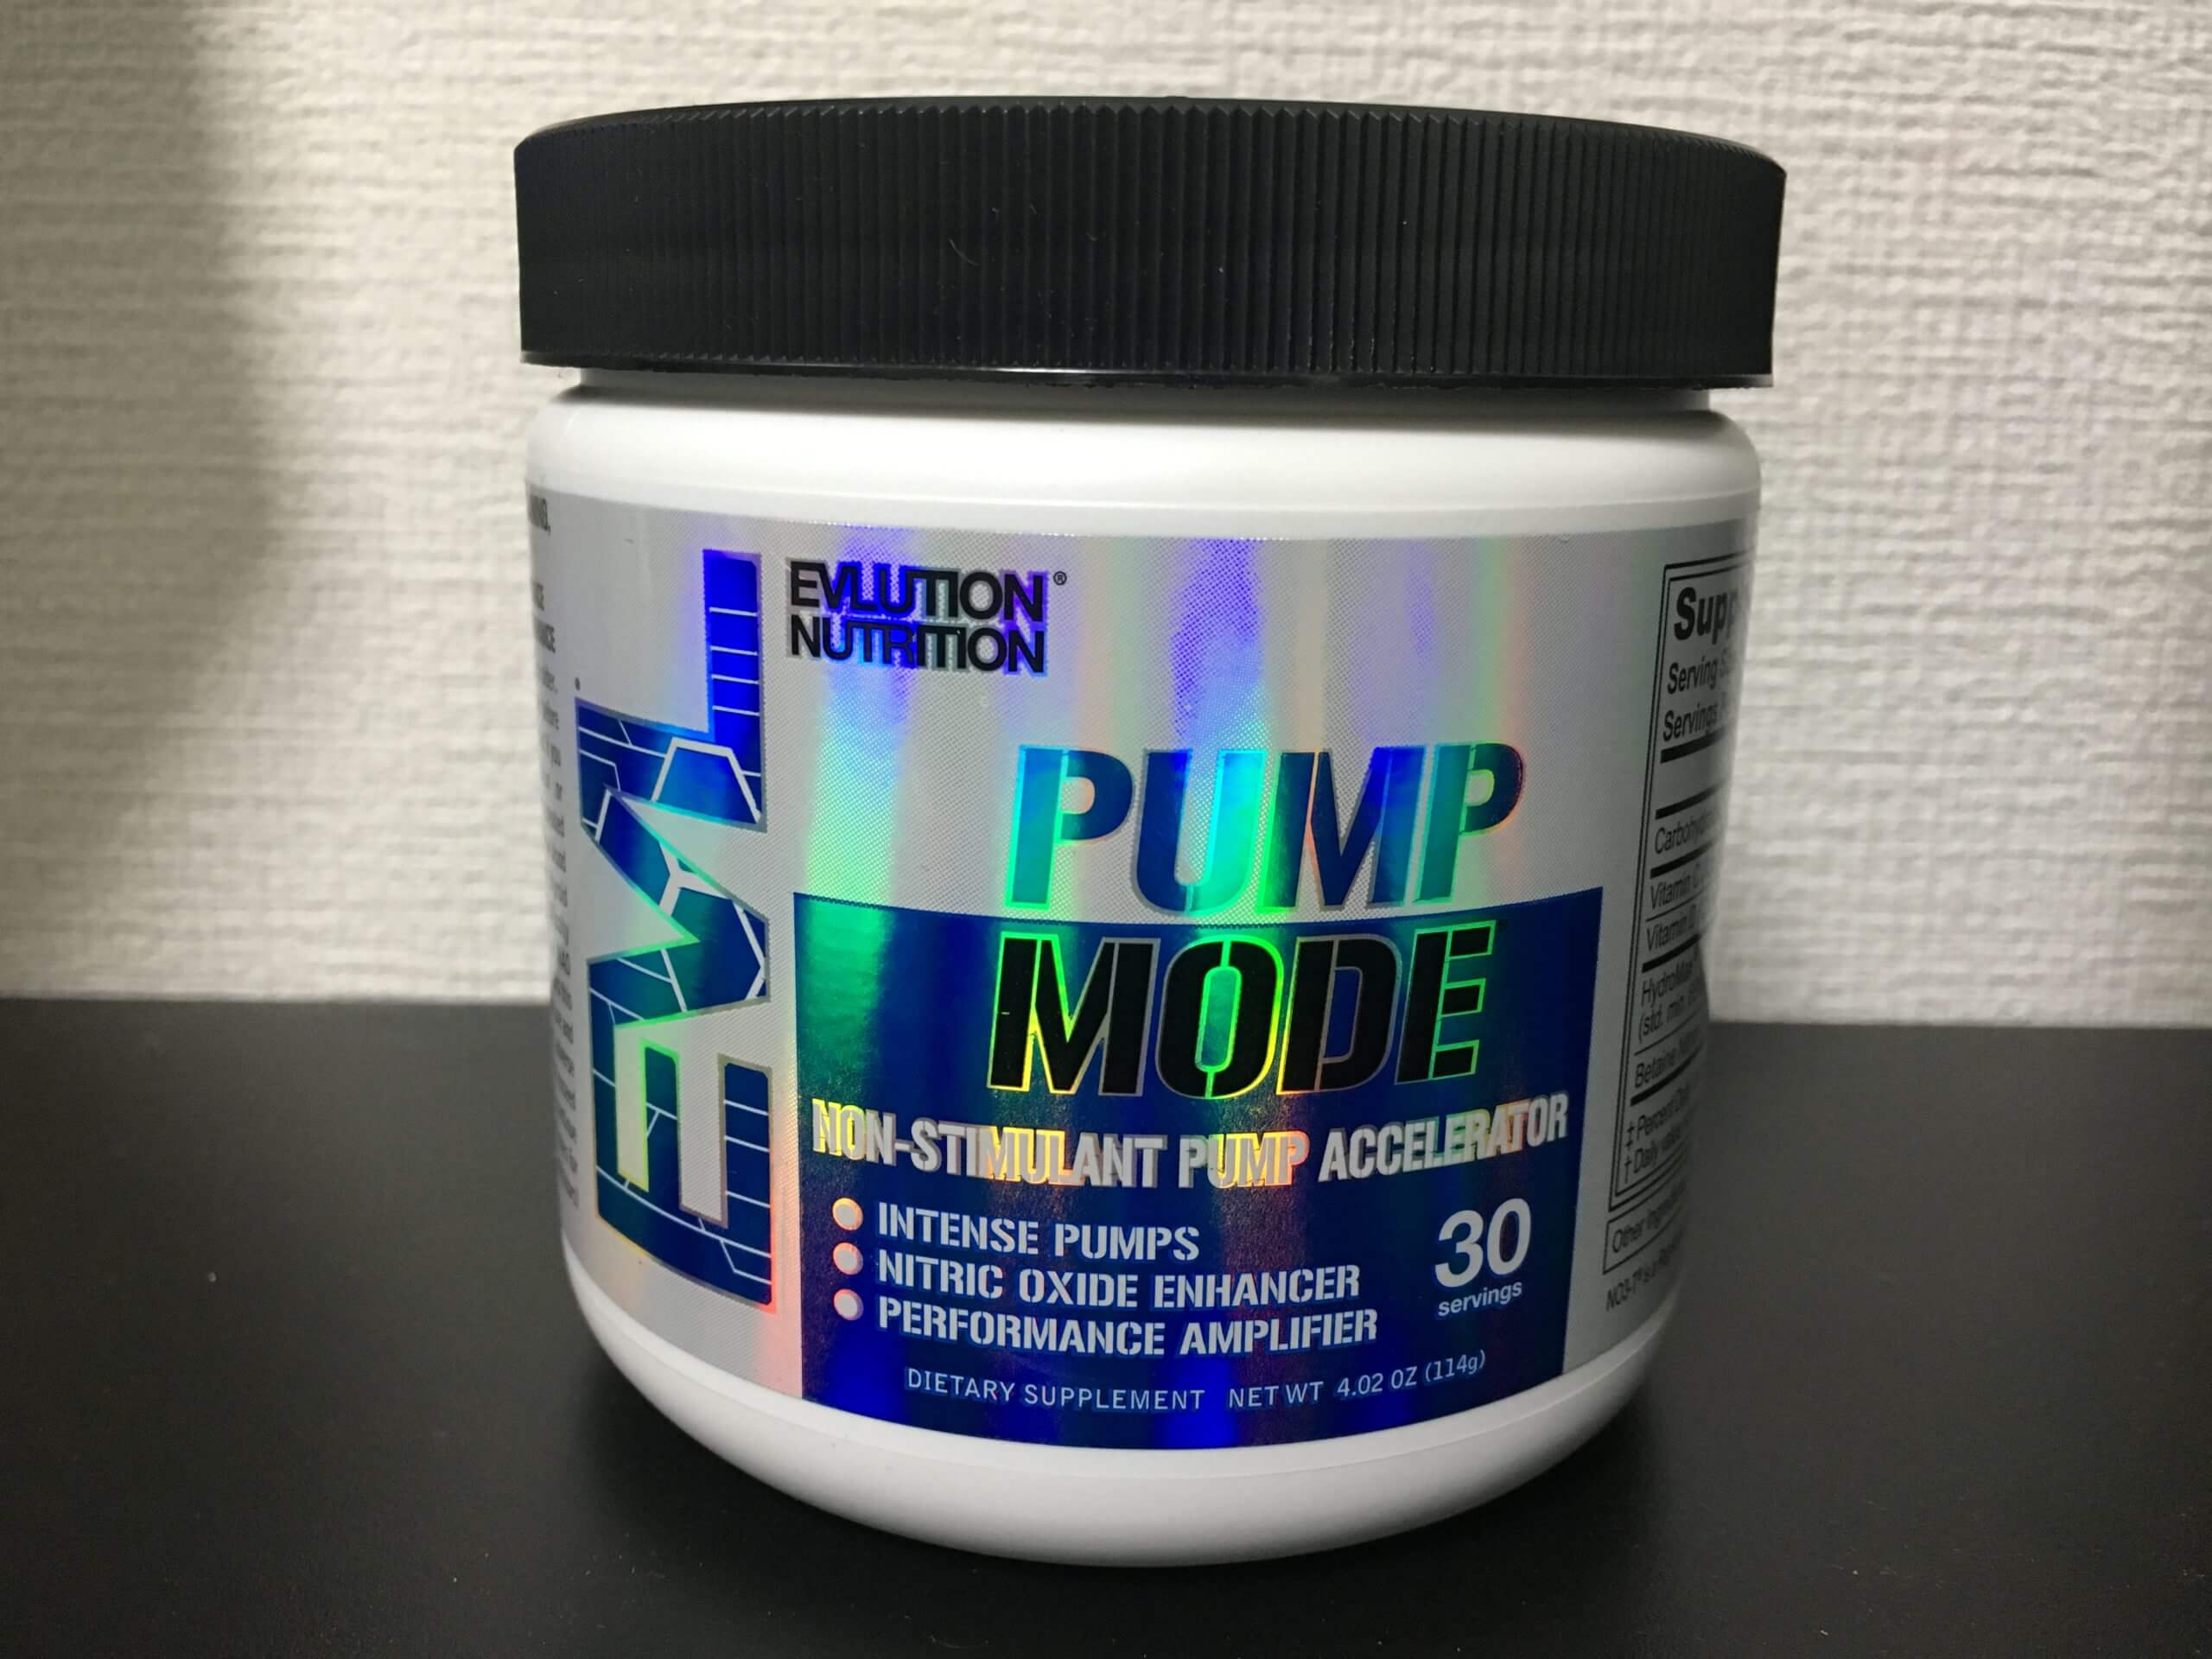 EVLUTION NUTRITION「PUMP MODE」